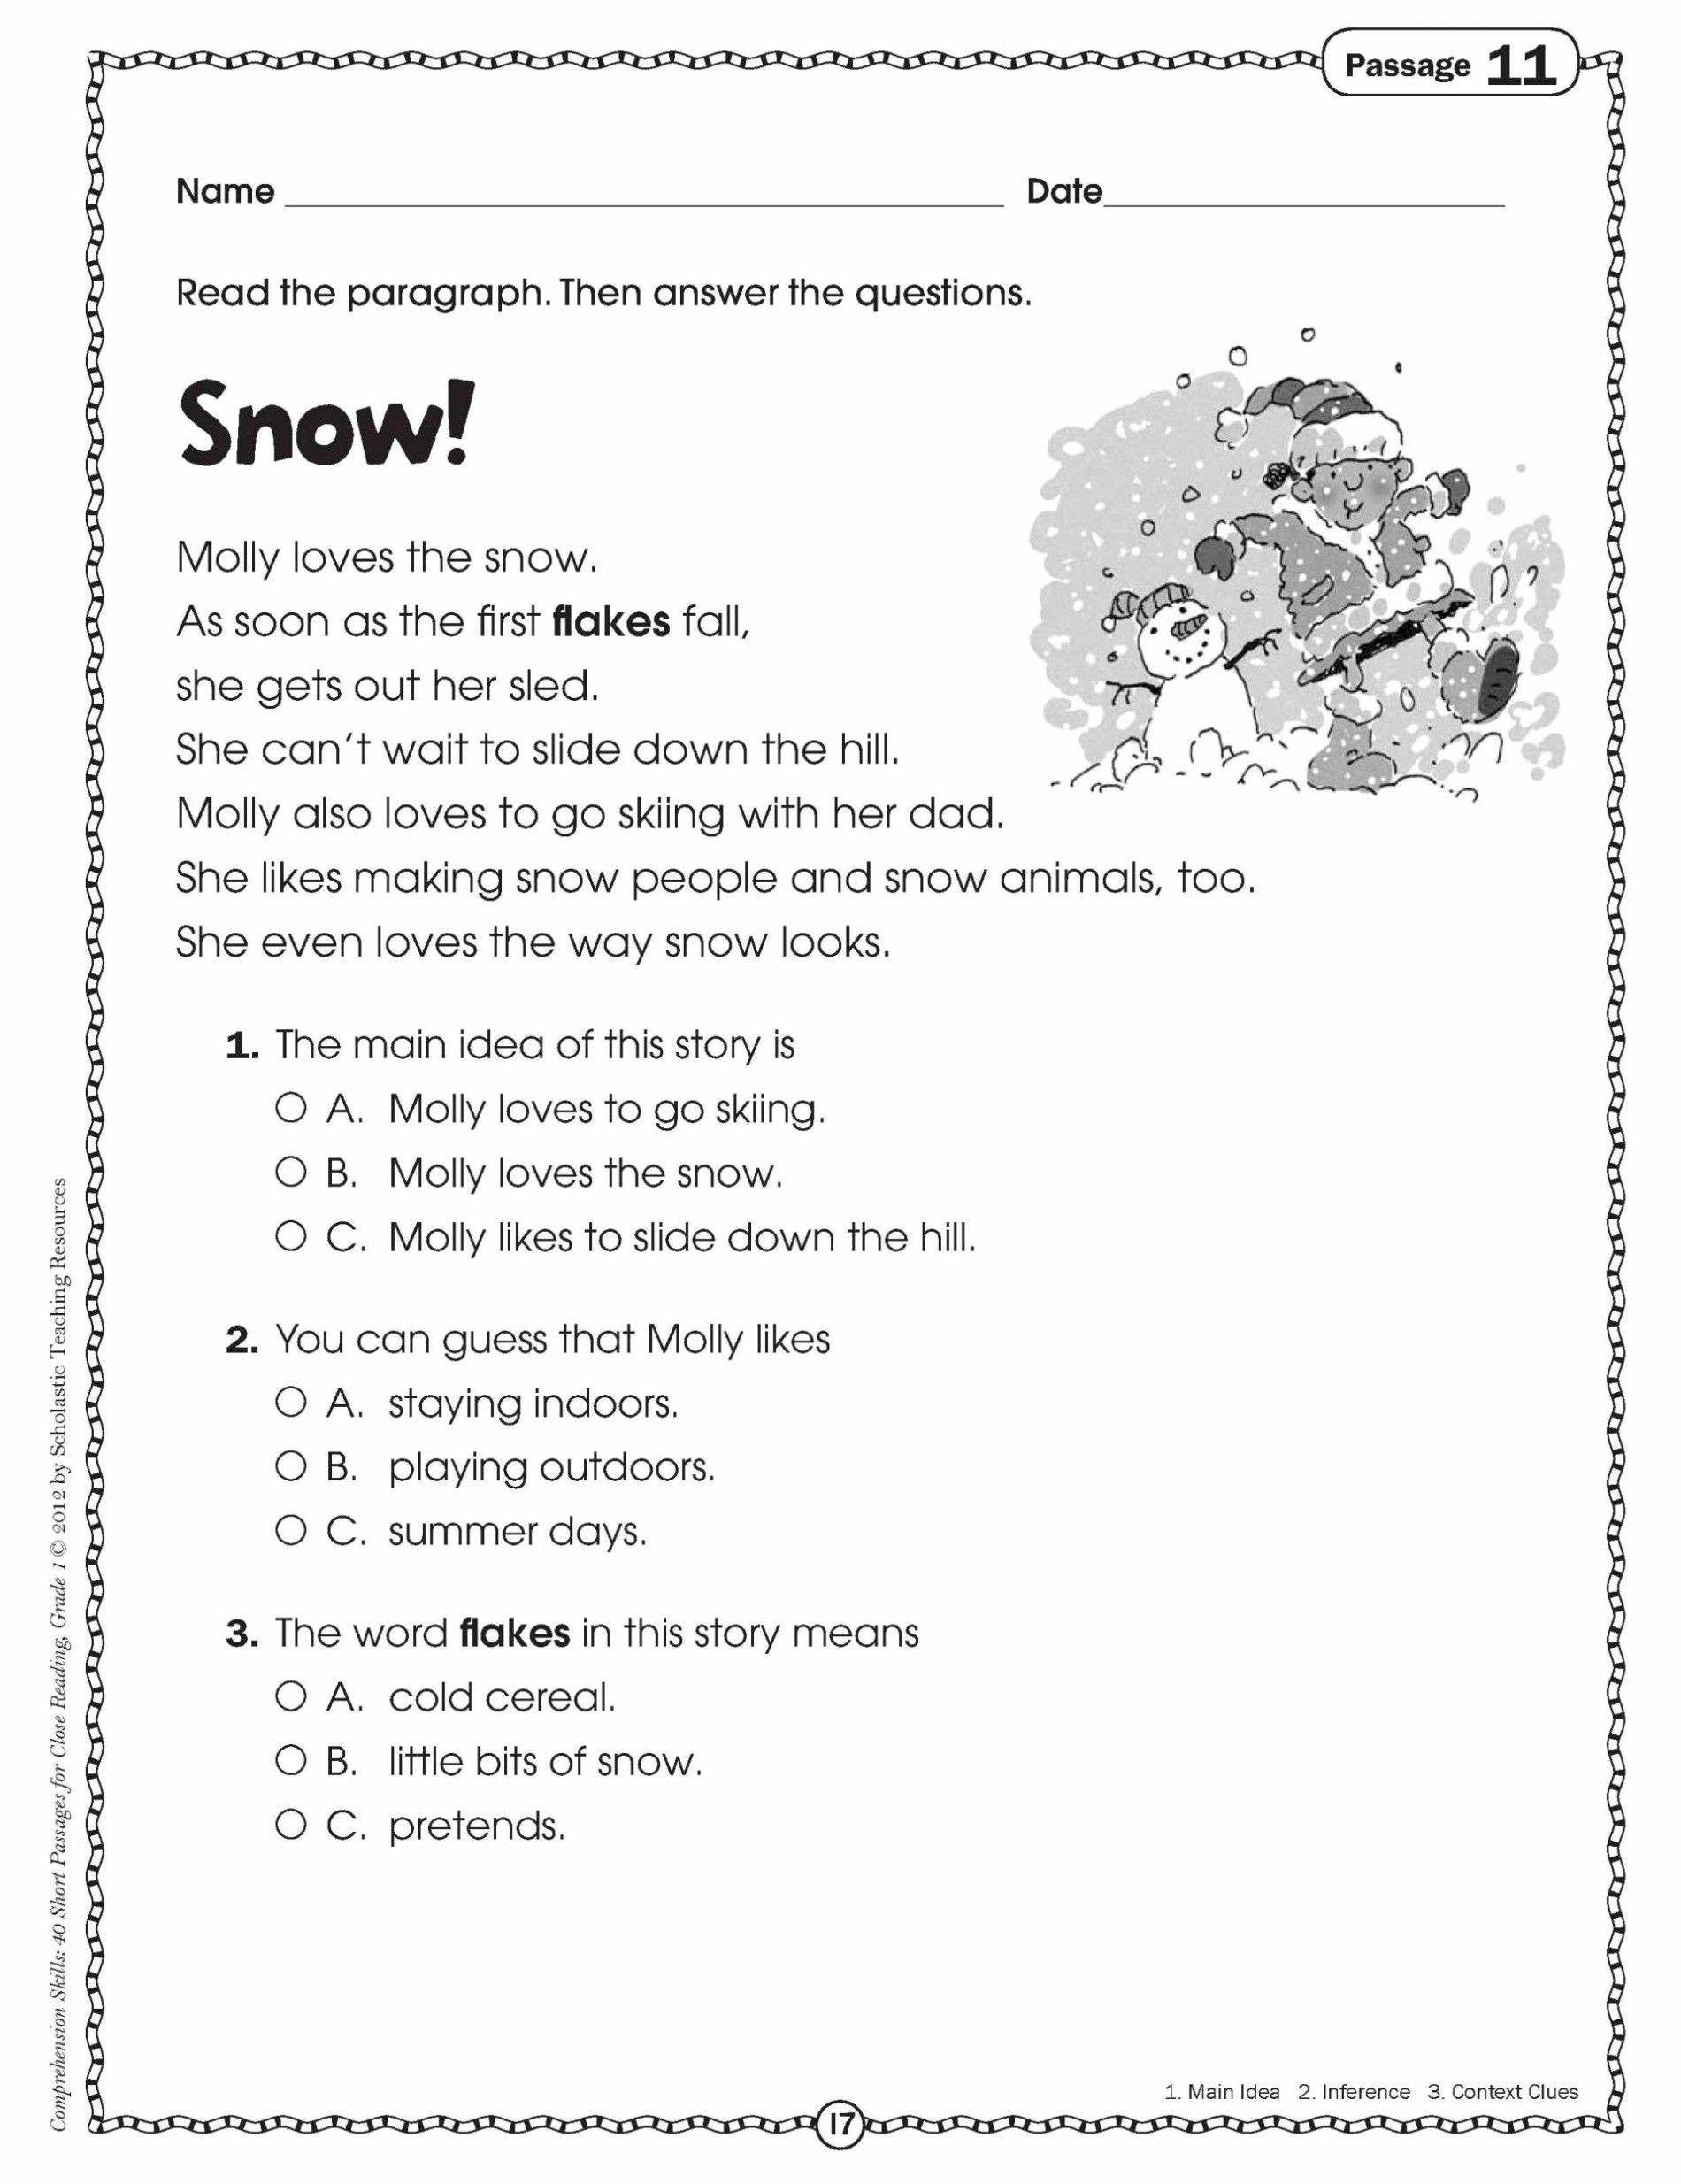 Context Clues Worksheets 1st Grade Pin On School Ideas